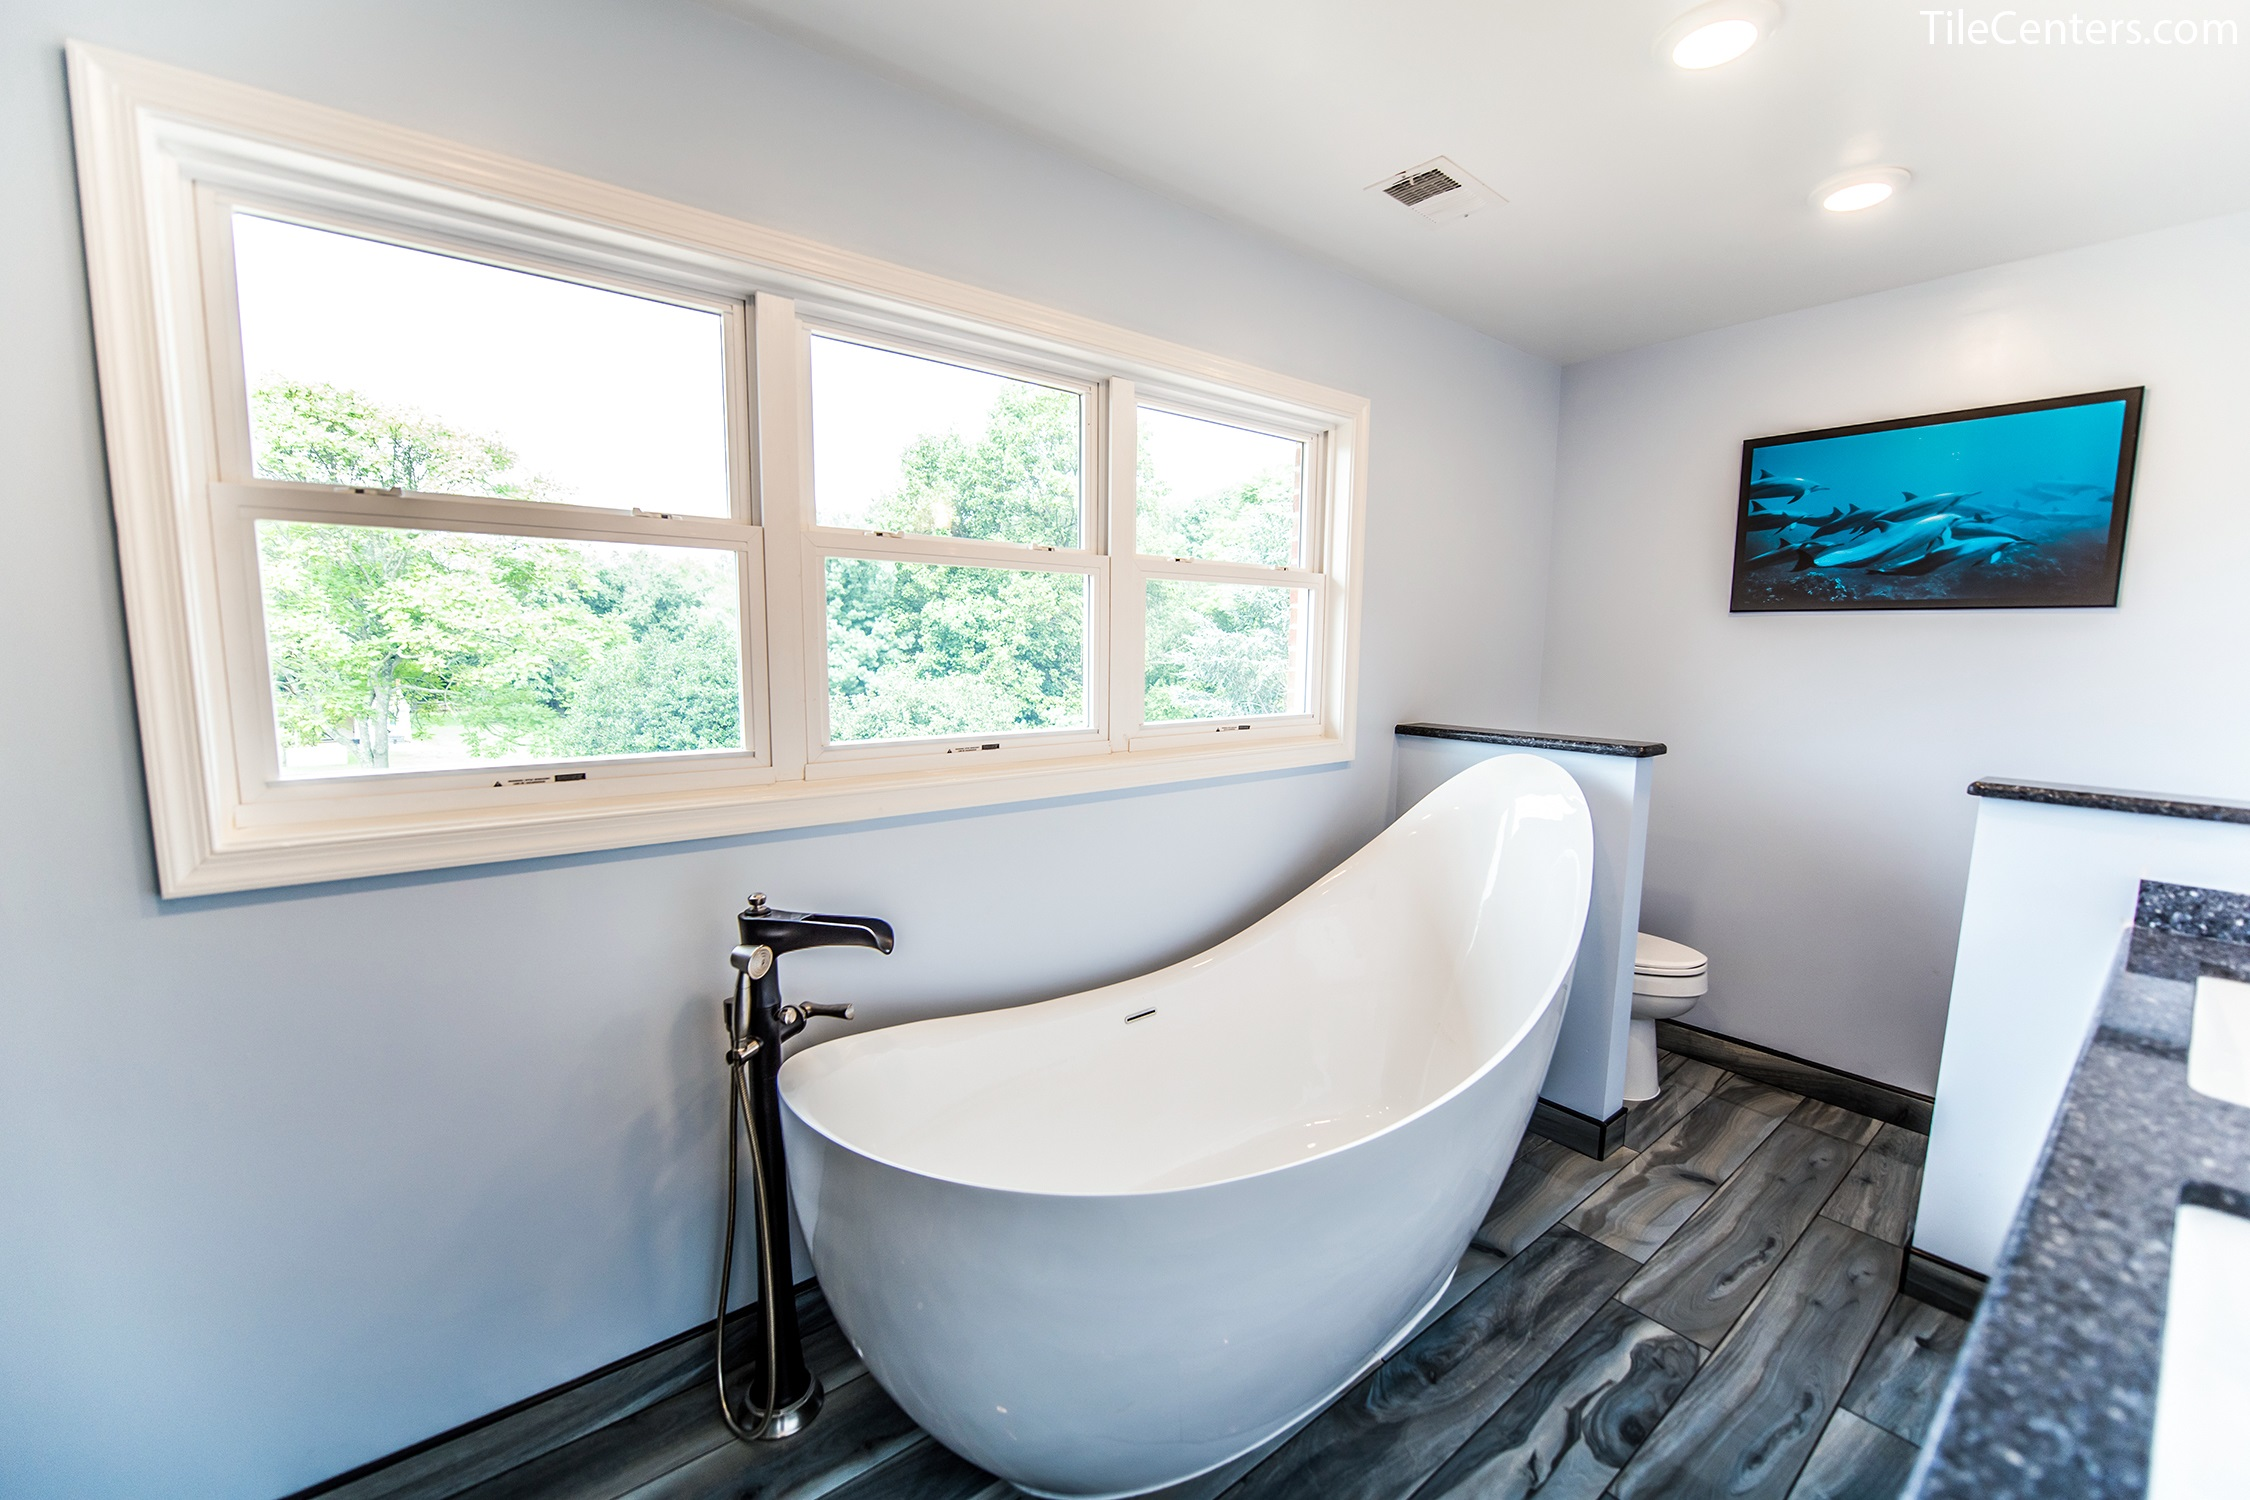 Bathroom - Wild Flower Ct, Rockville, MD 20855: Tile Center ...